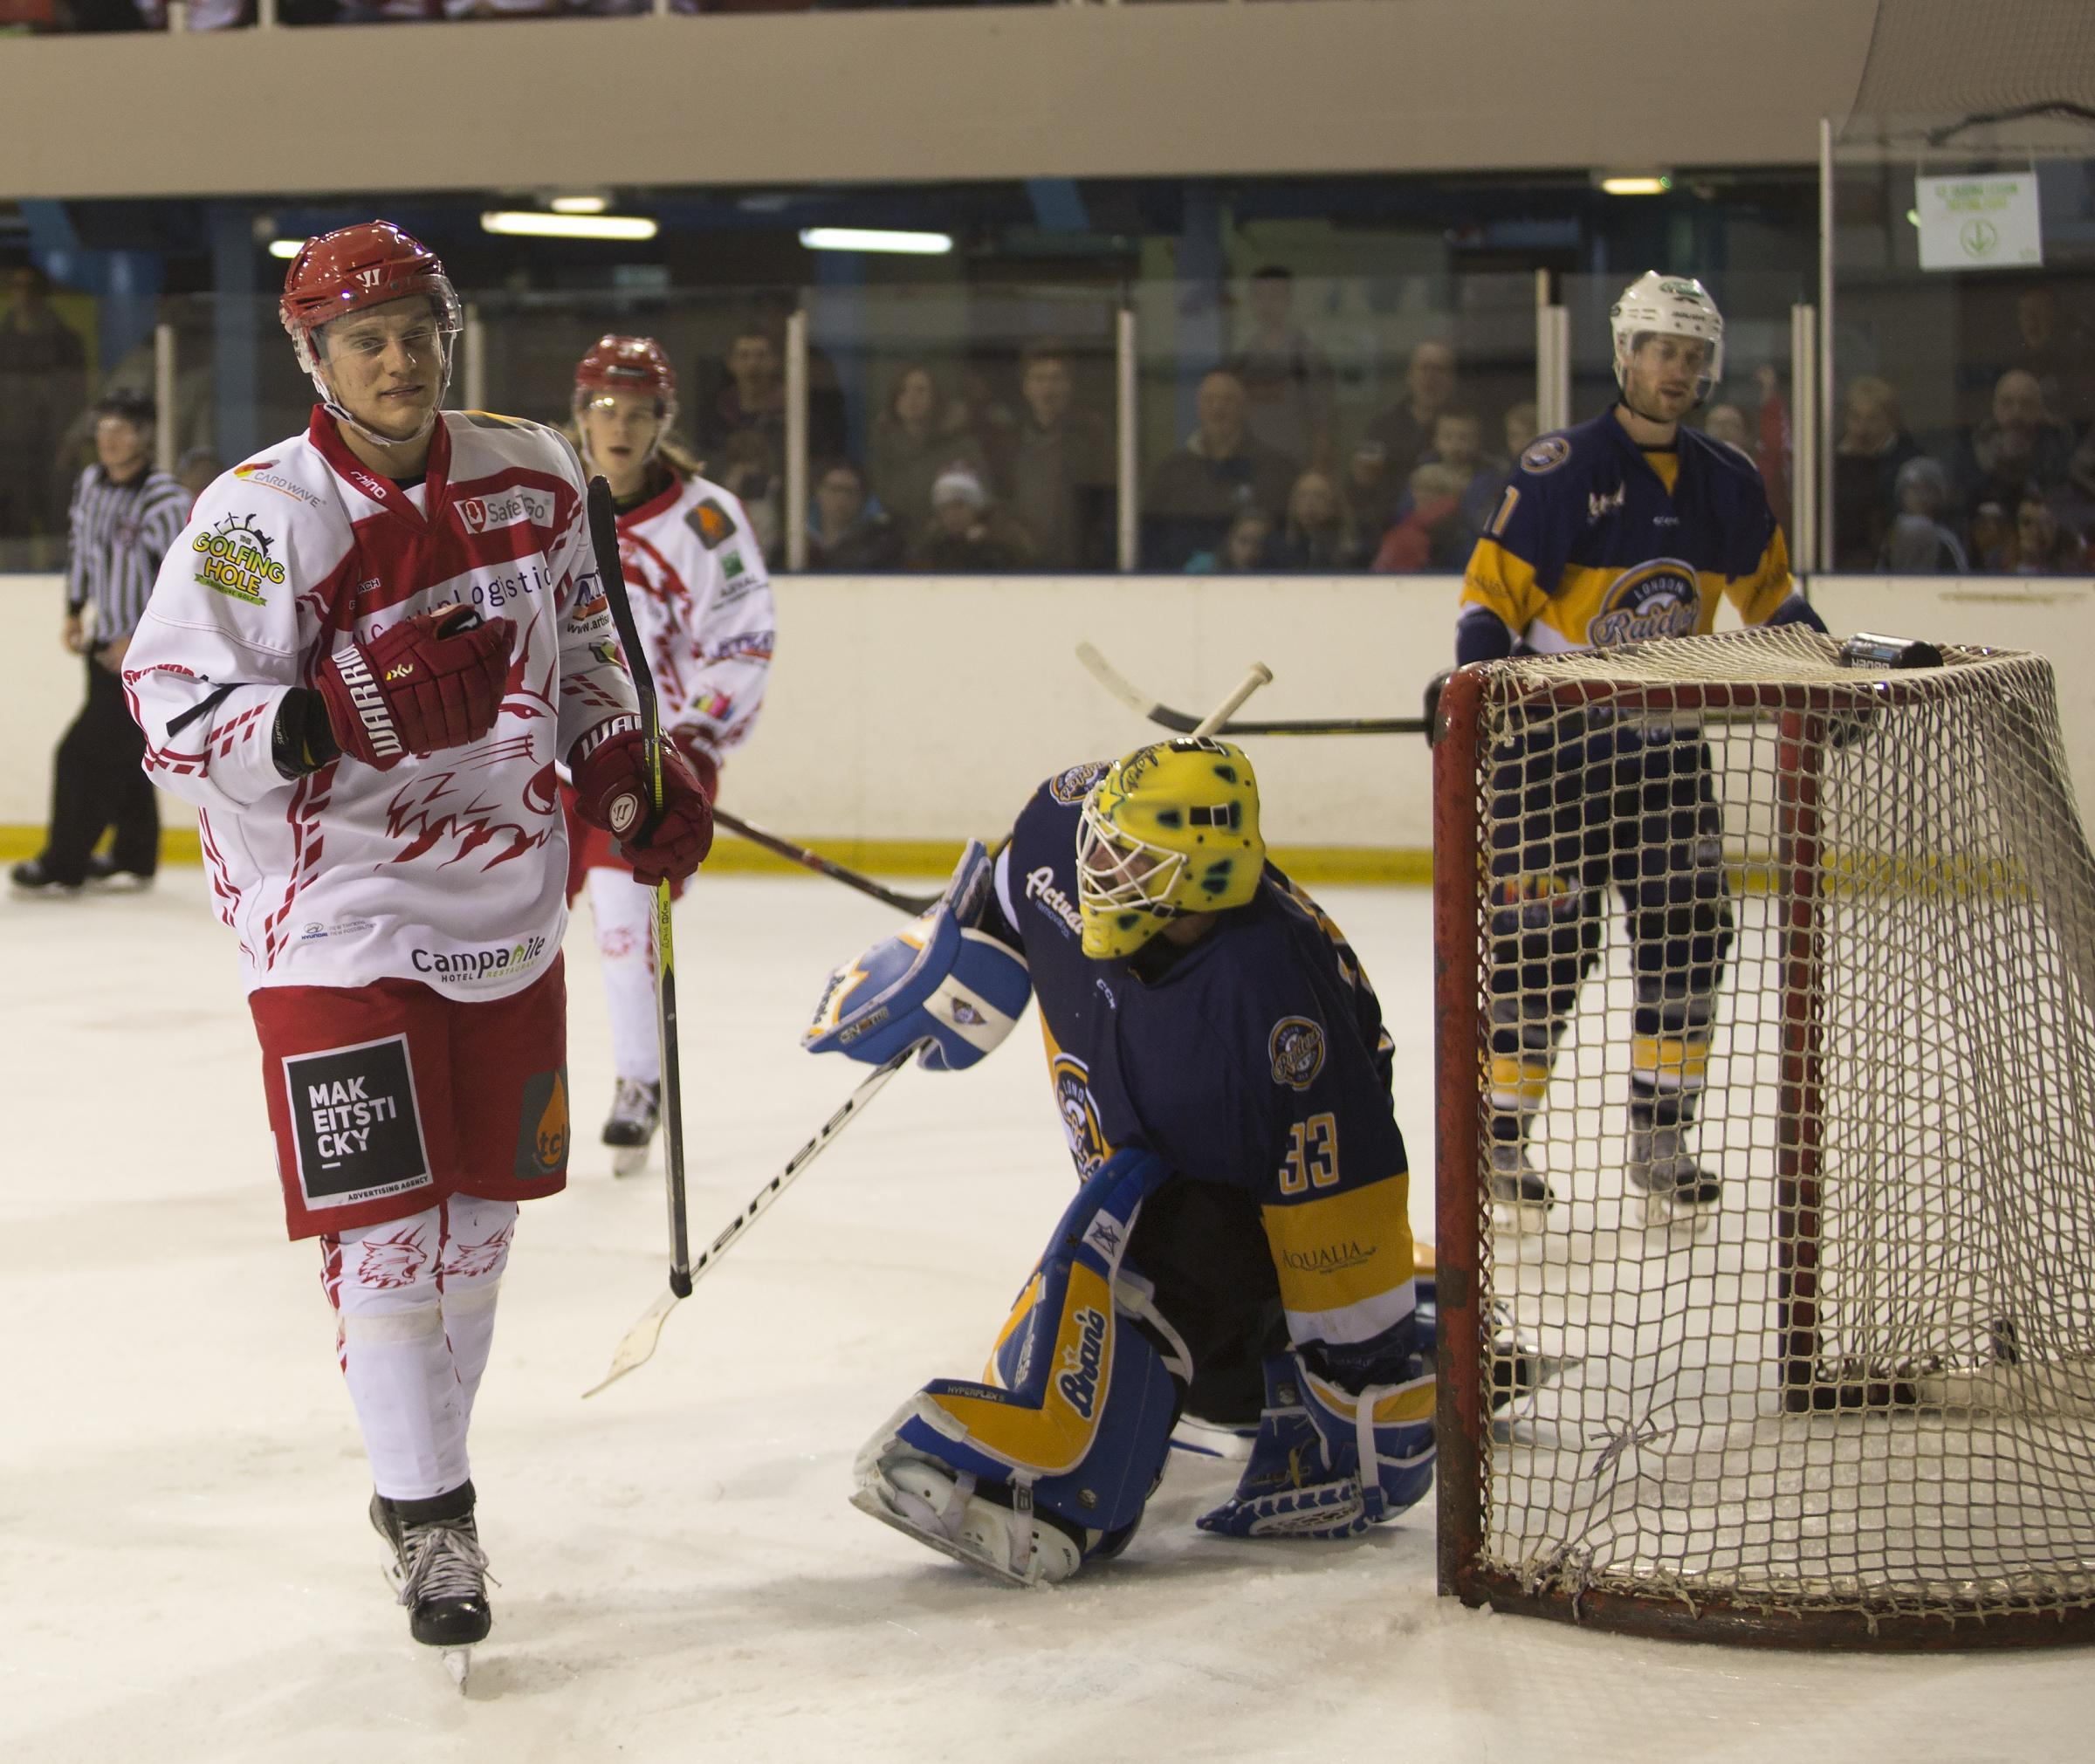 Swindon Wildcats Vs London Raiders, Chris Jones scroes another goal for the Cats Picture Ryan Ainscow, 13.01.18.